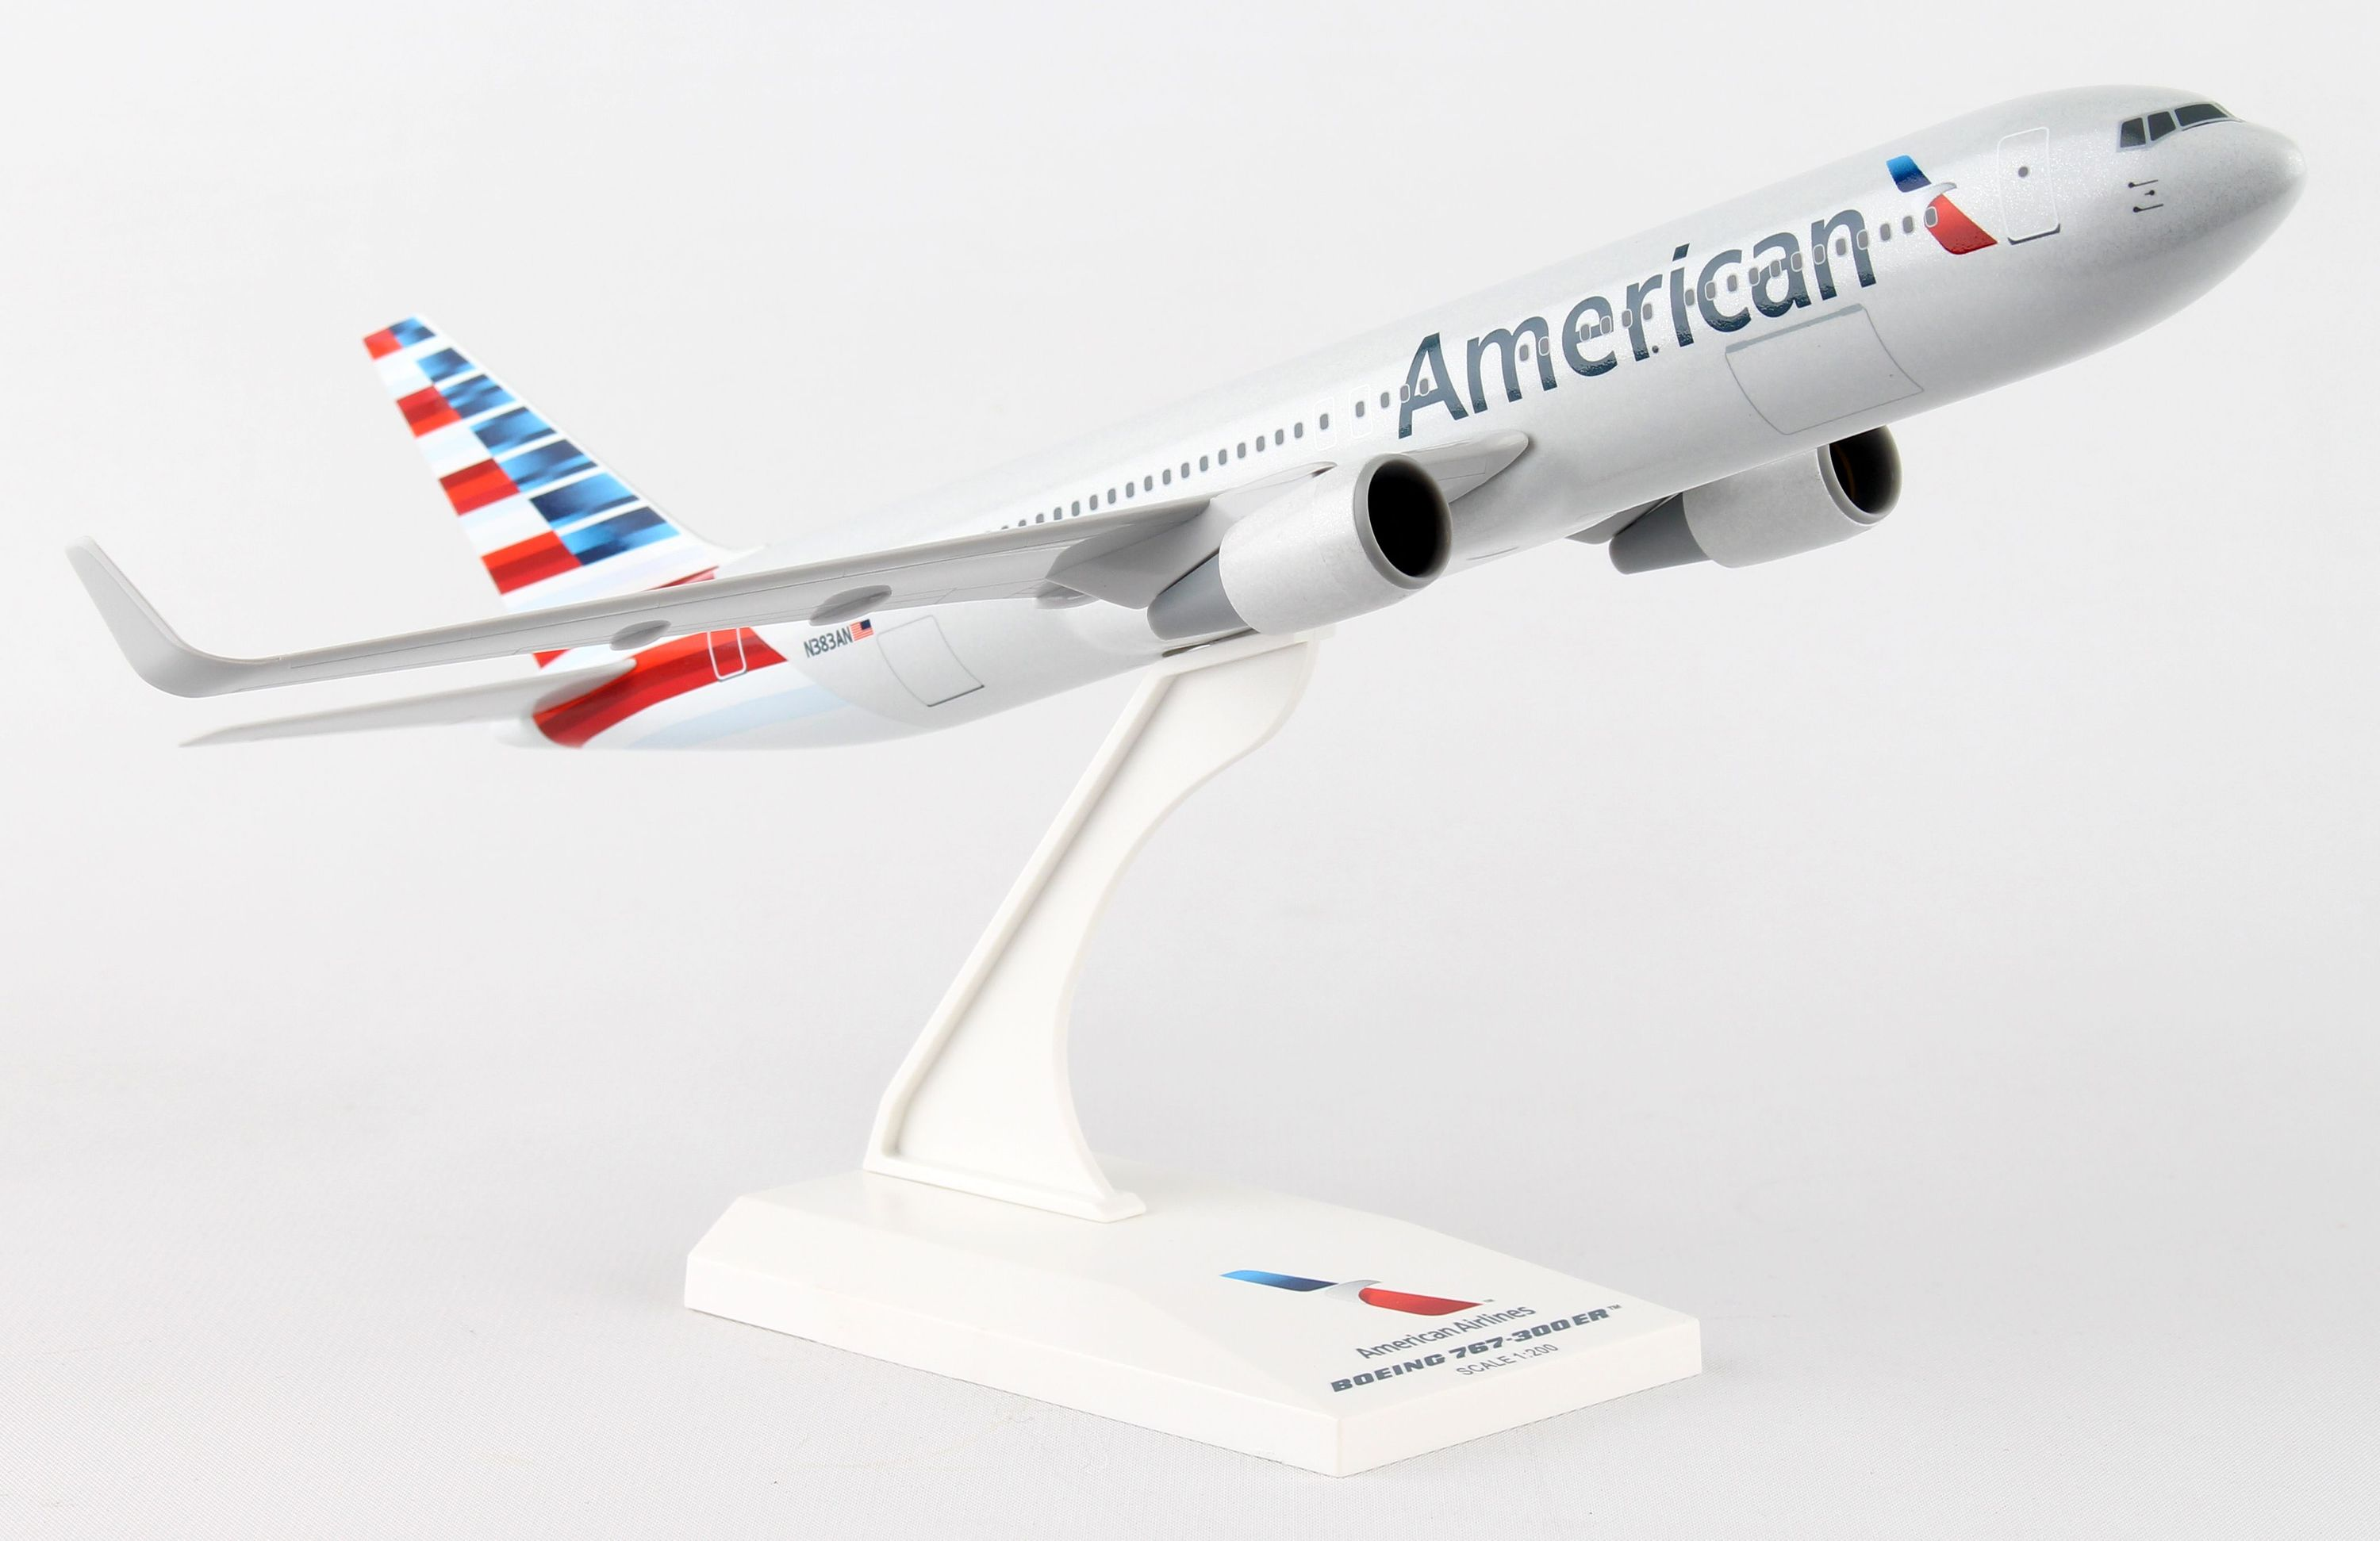 SkyMarks Flugzeugmodell American Airlines Boeing 767-300 Maßstab 1:200